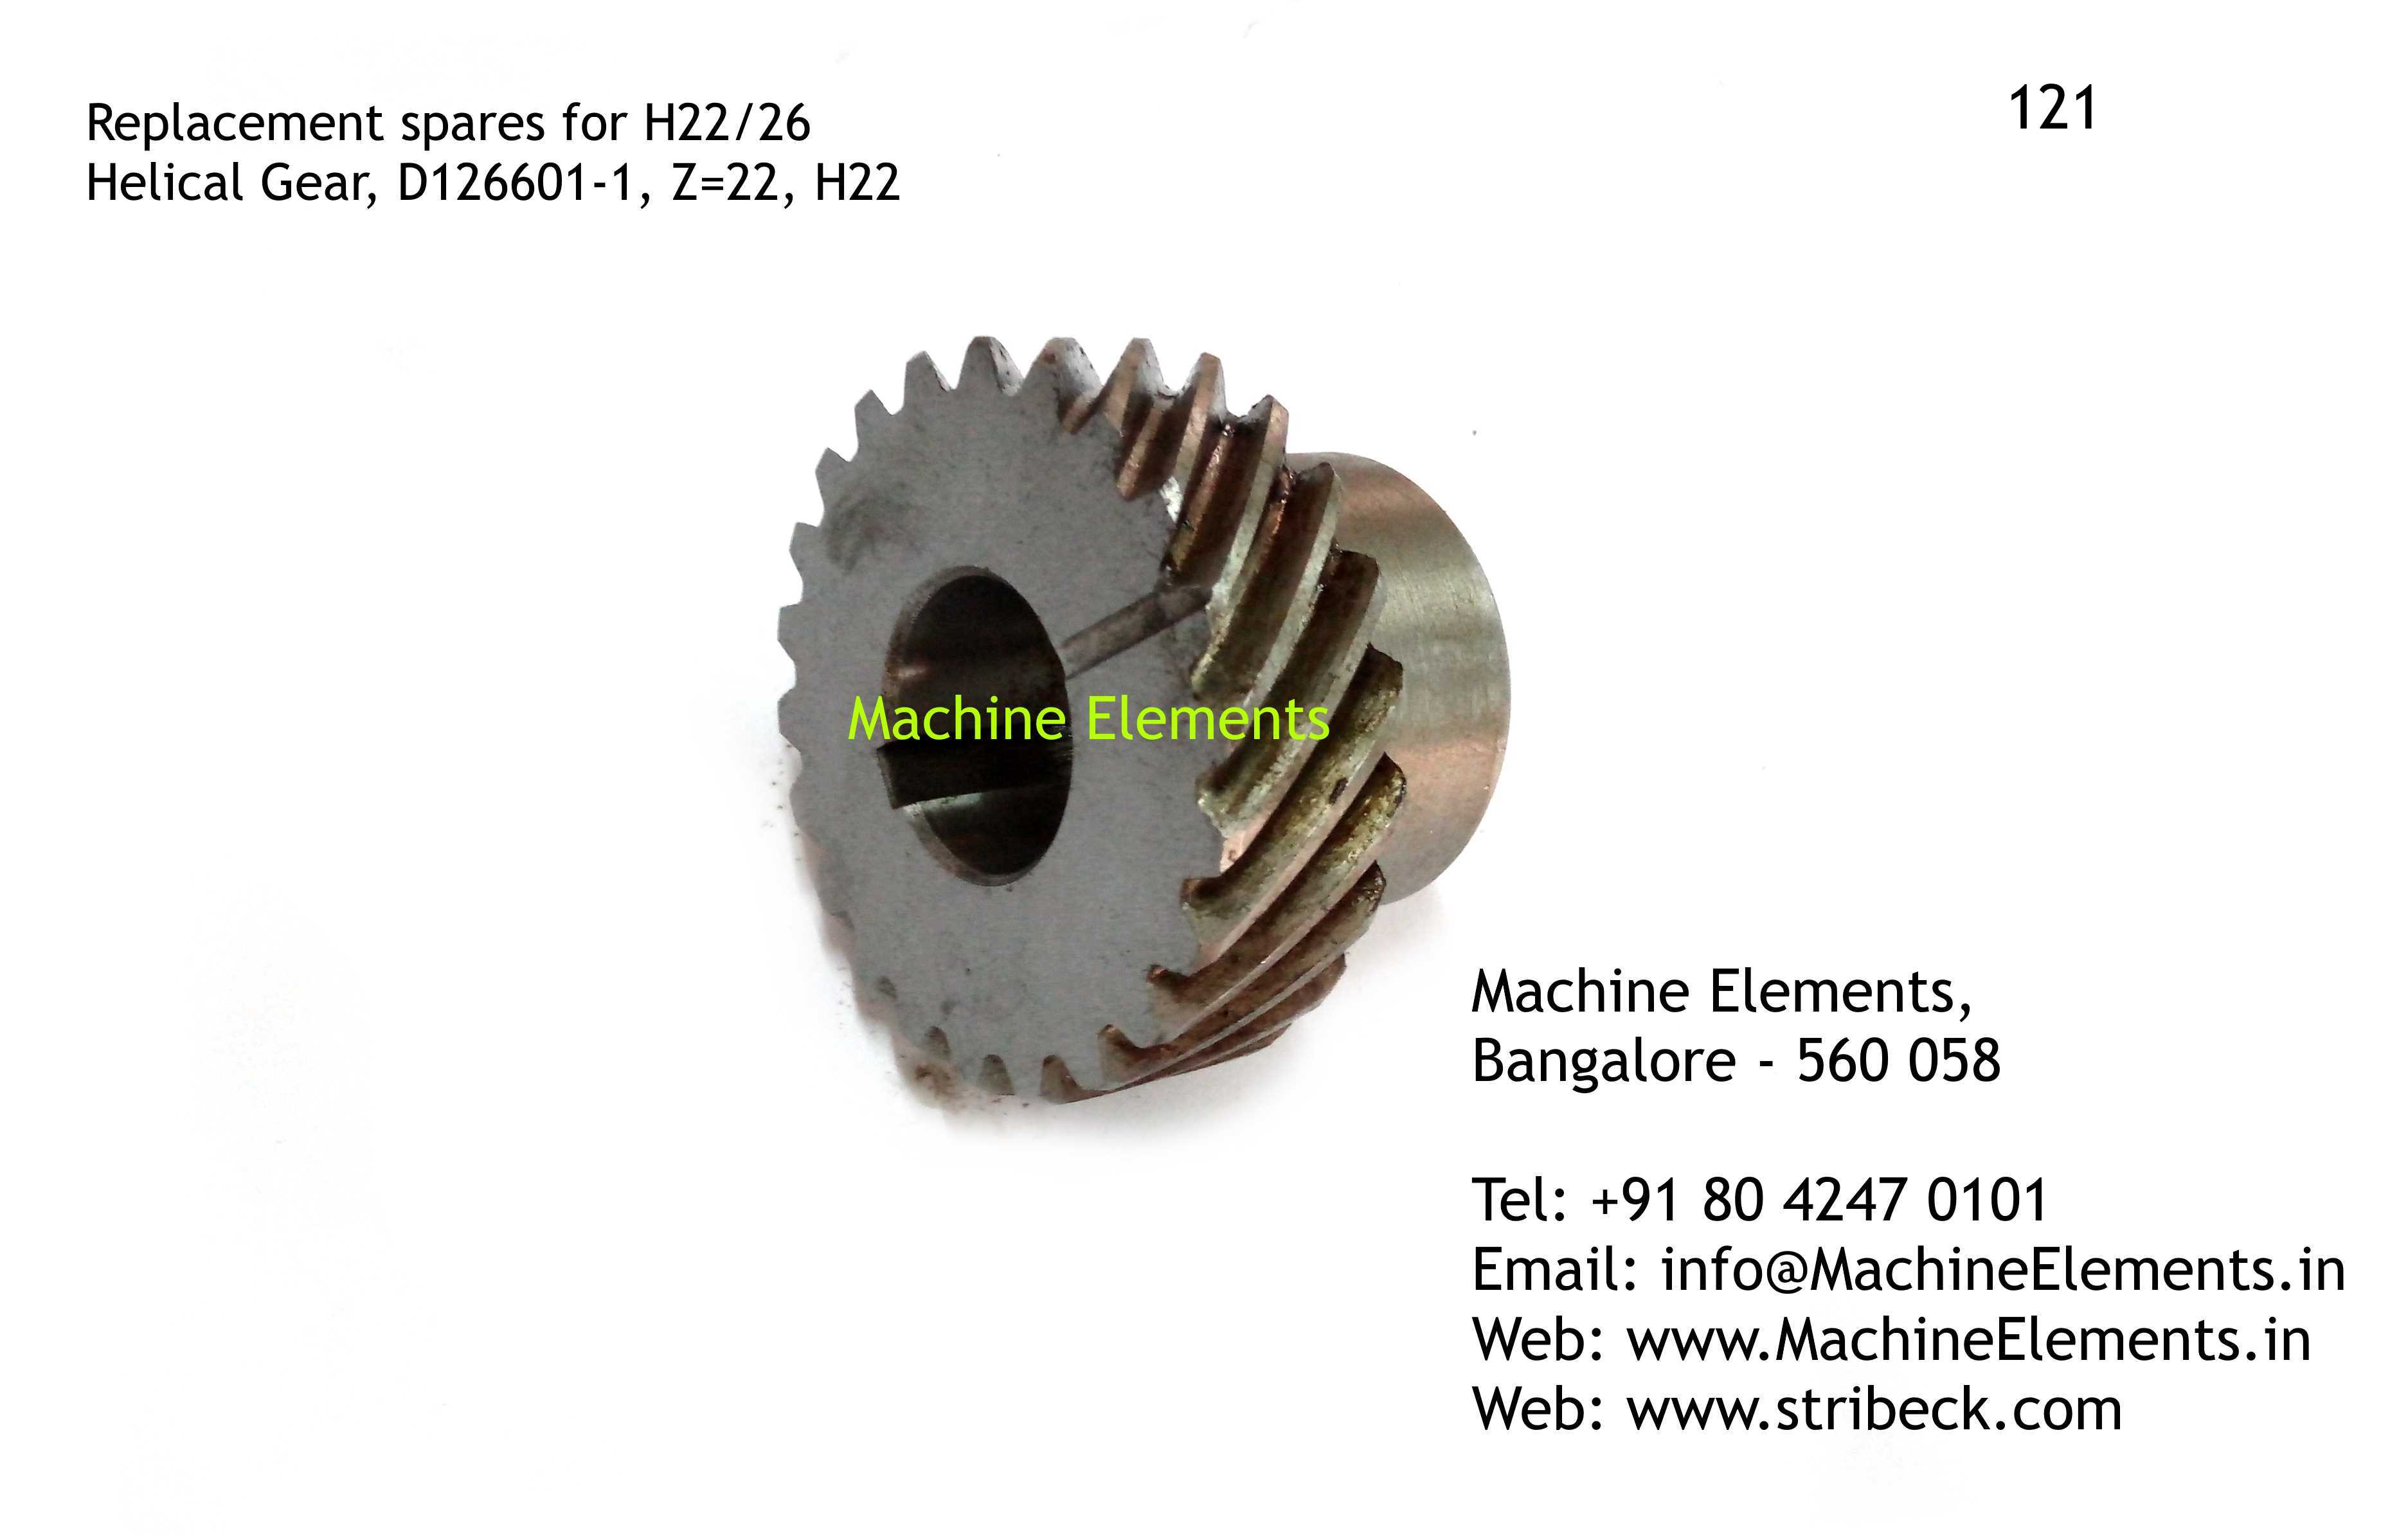 Helical Gear, D126601-1